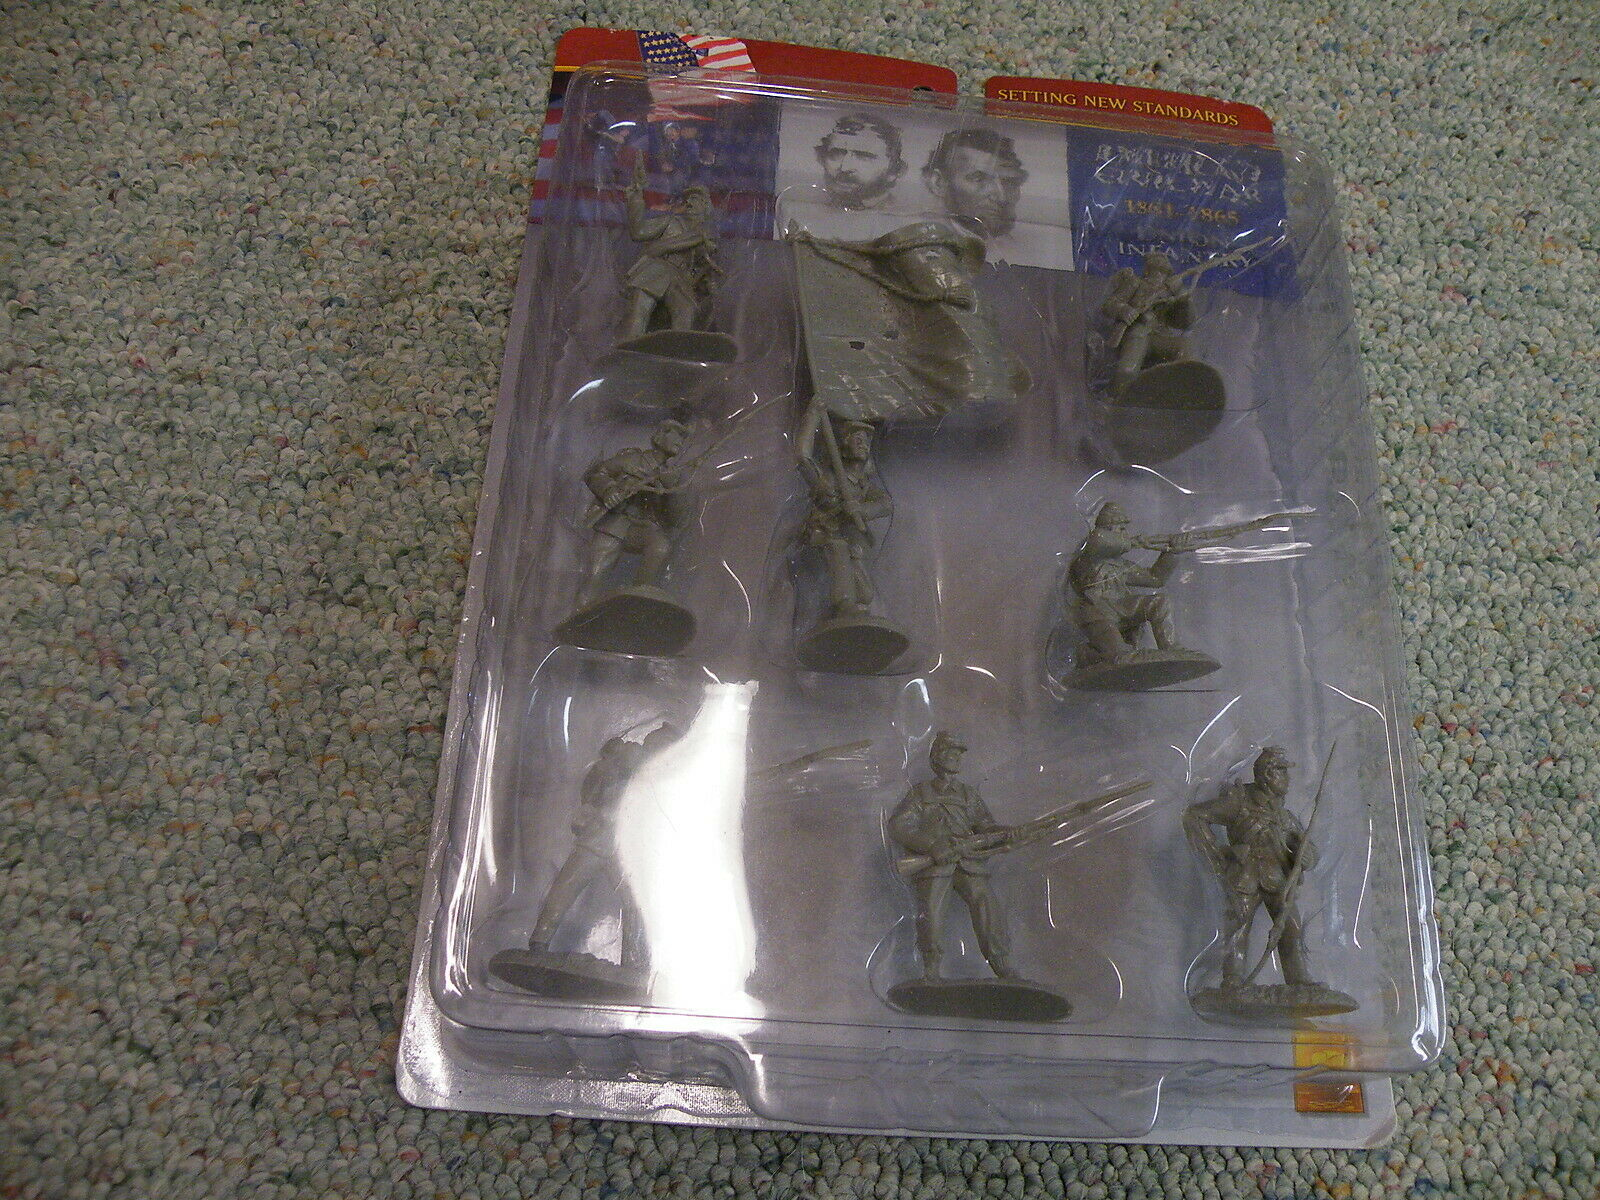 Conte 1 32 54mmAmerican Civil war 1861-65 Union Infantry in grey